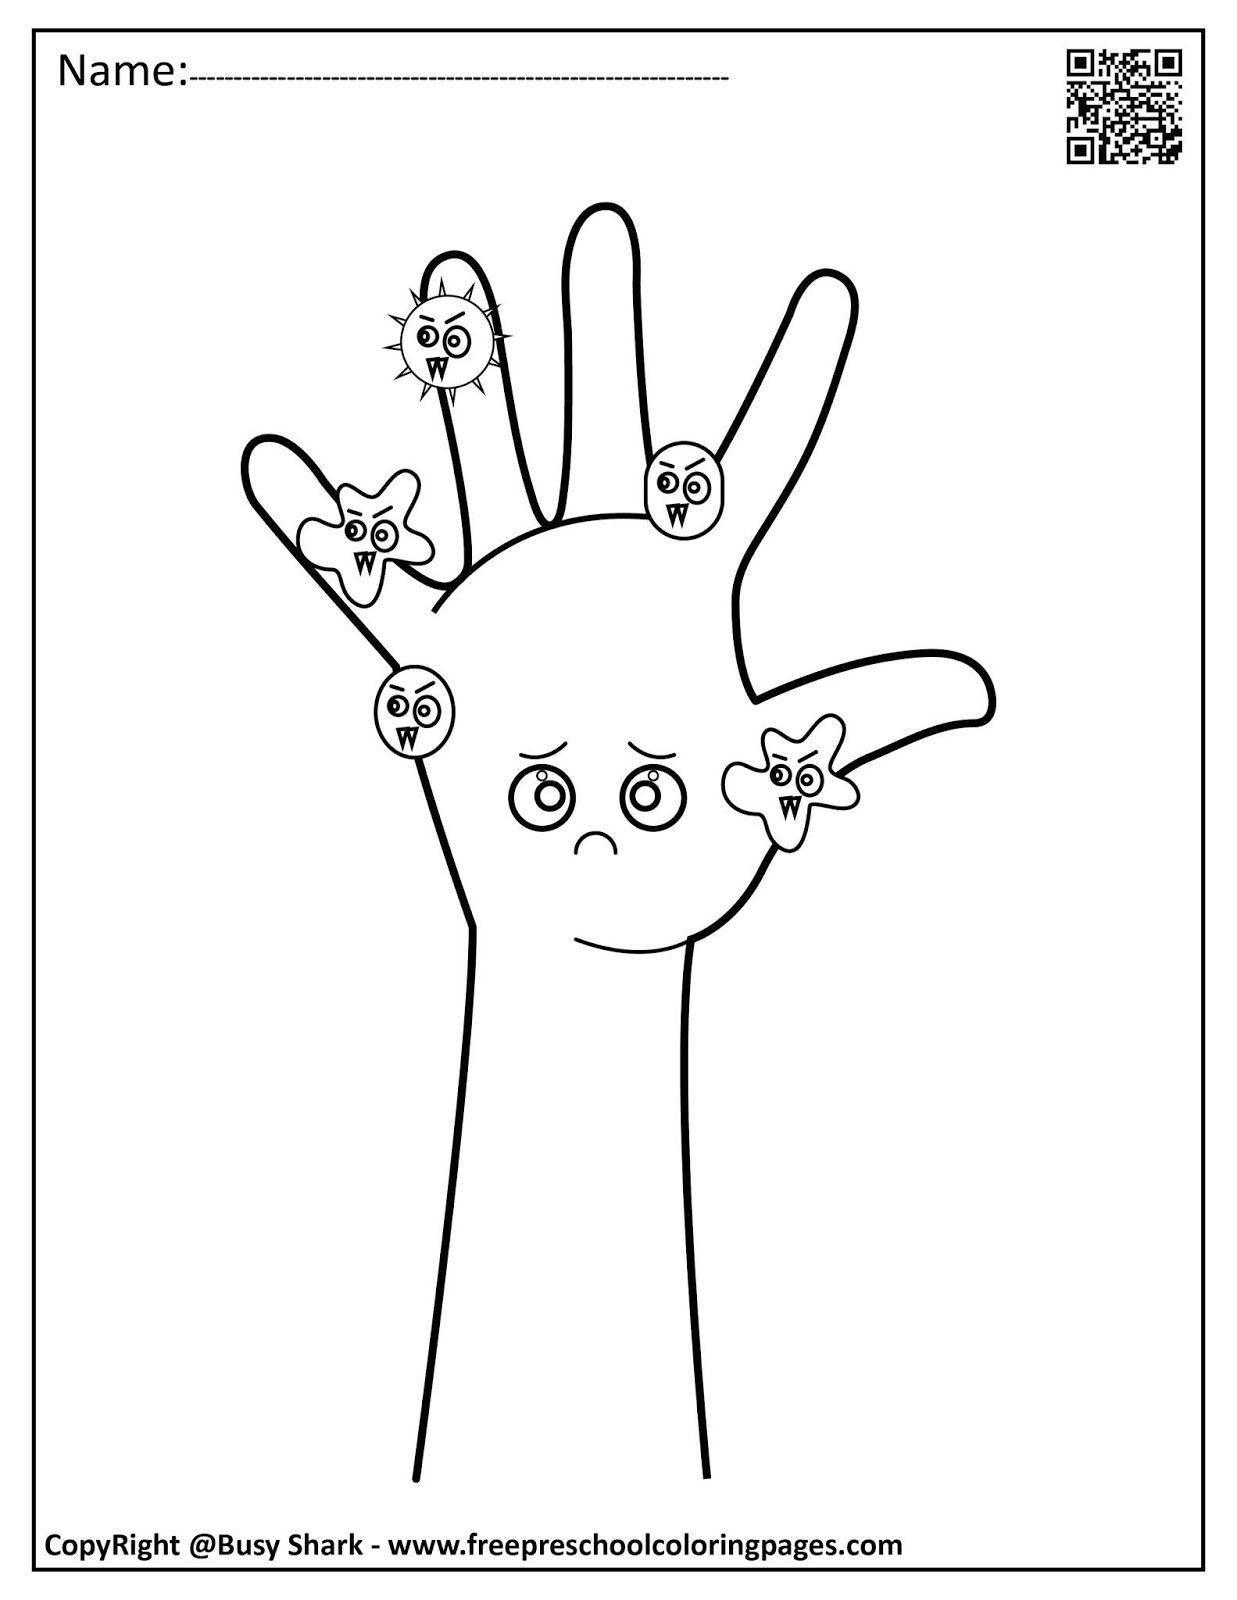 Set Of Hand Washing And Germs Coloring Pages In